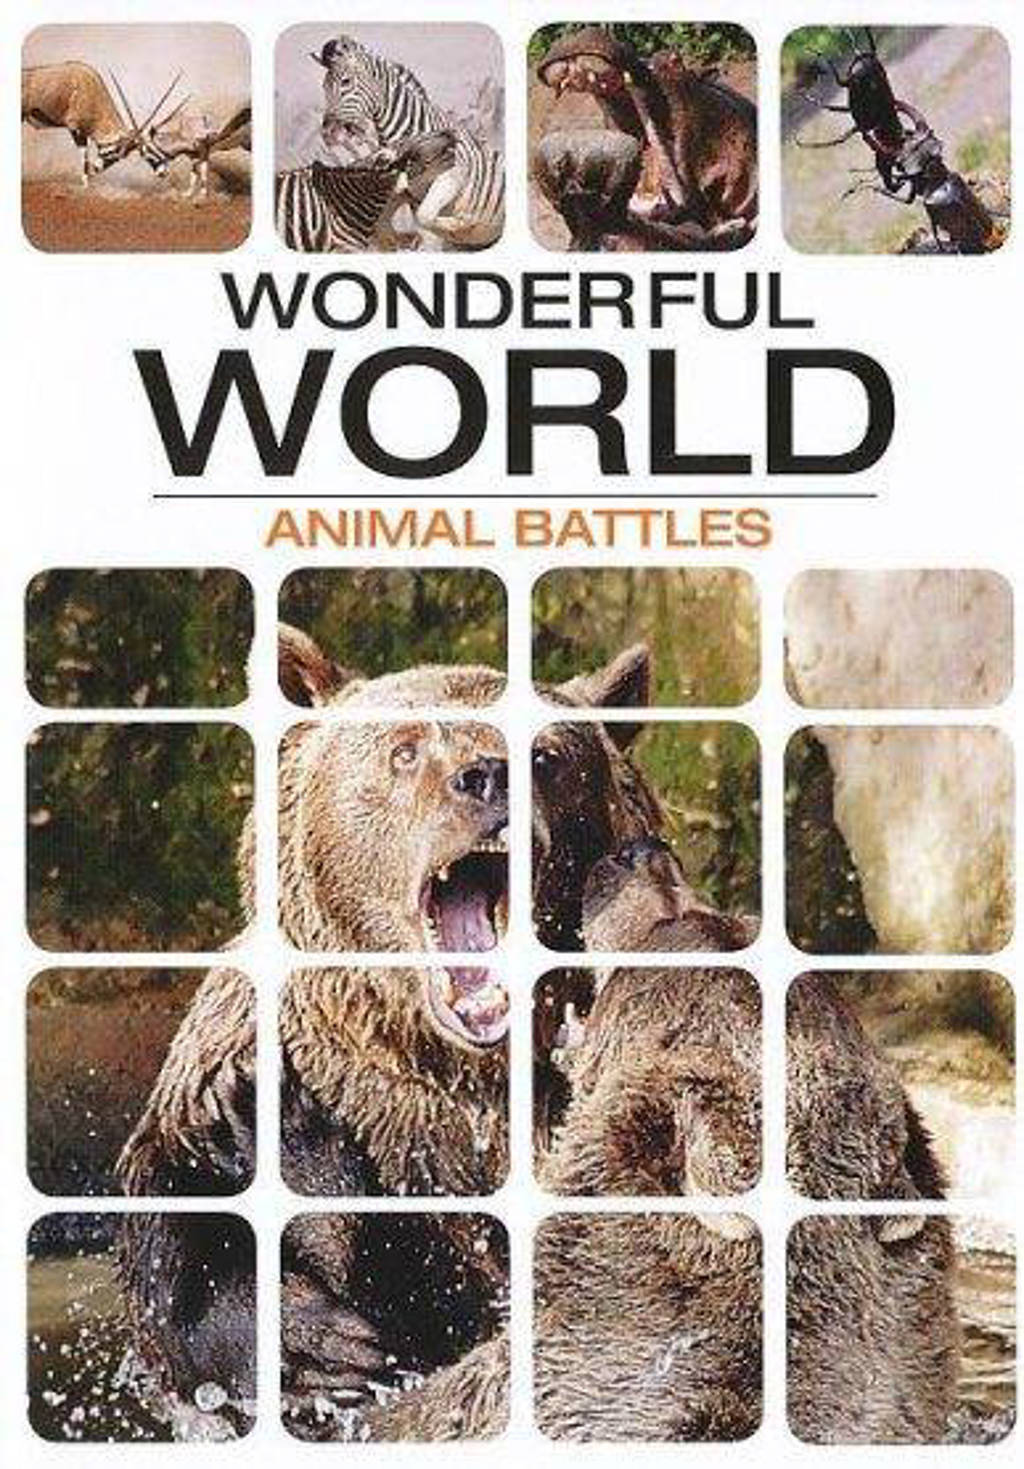 Wonderful world - Animal battles (DVD)